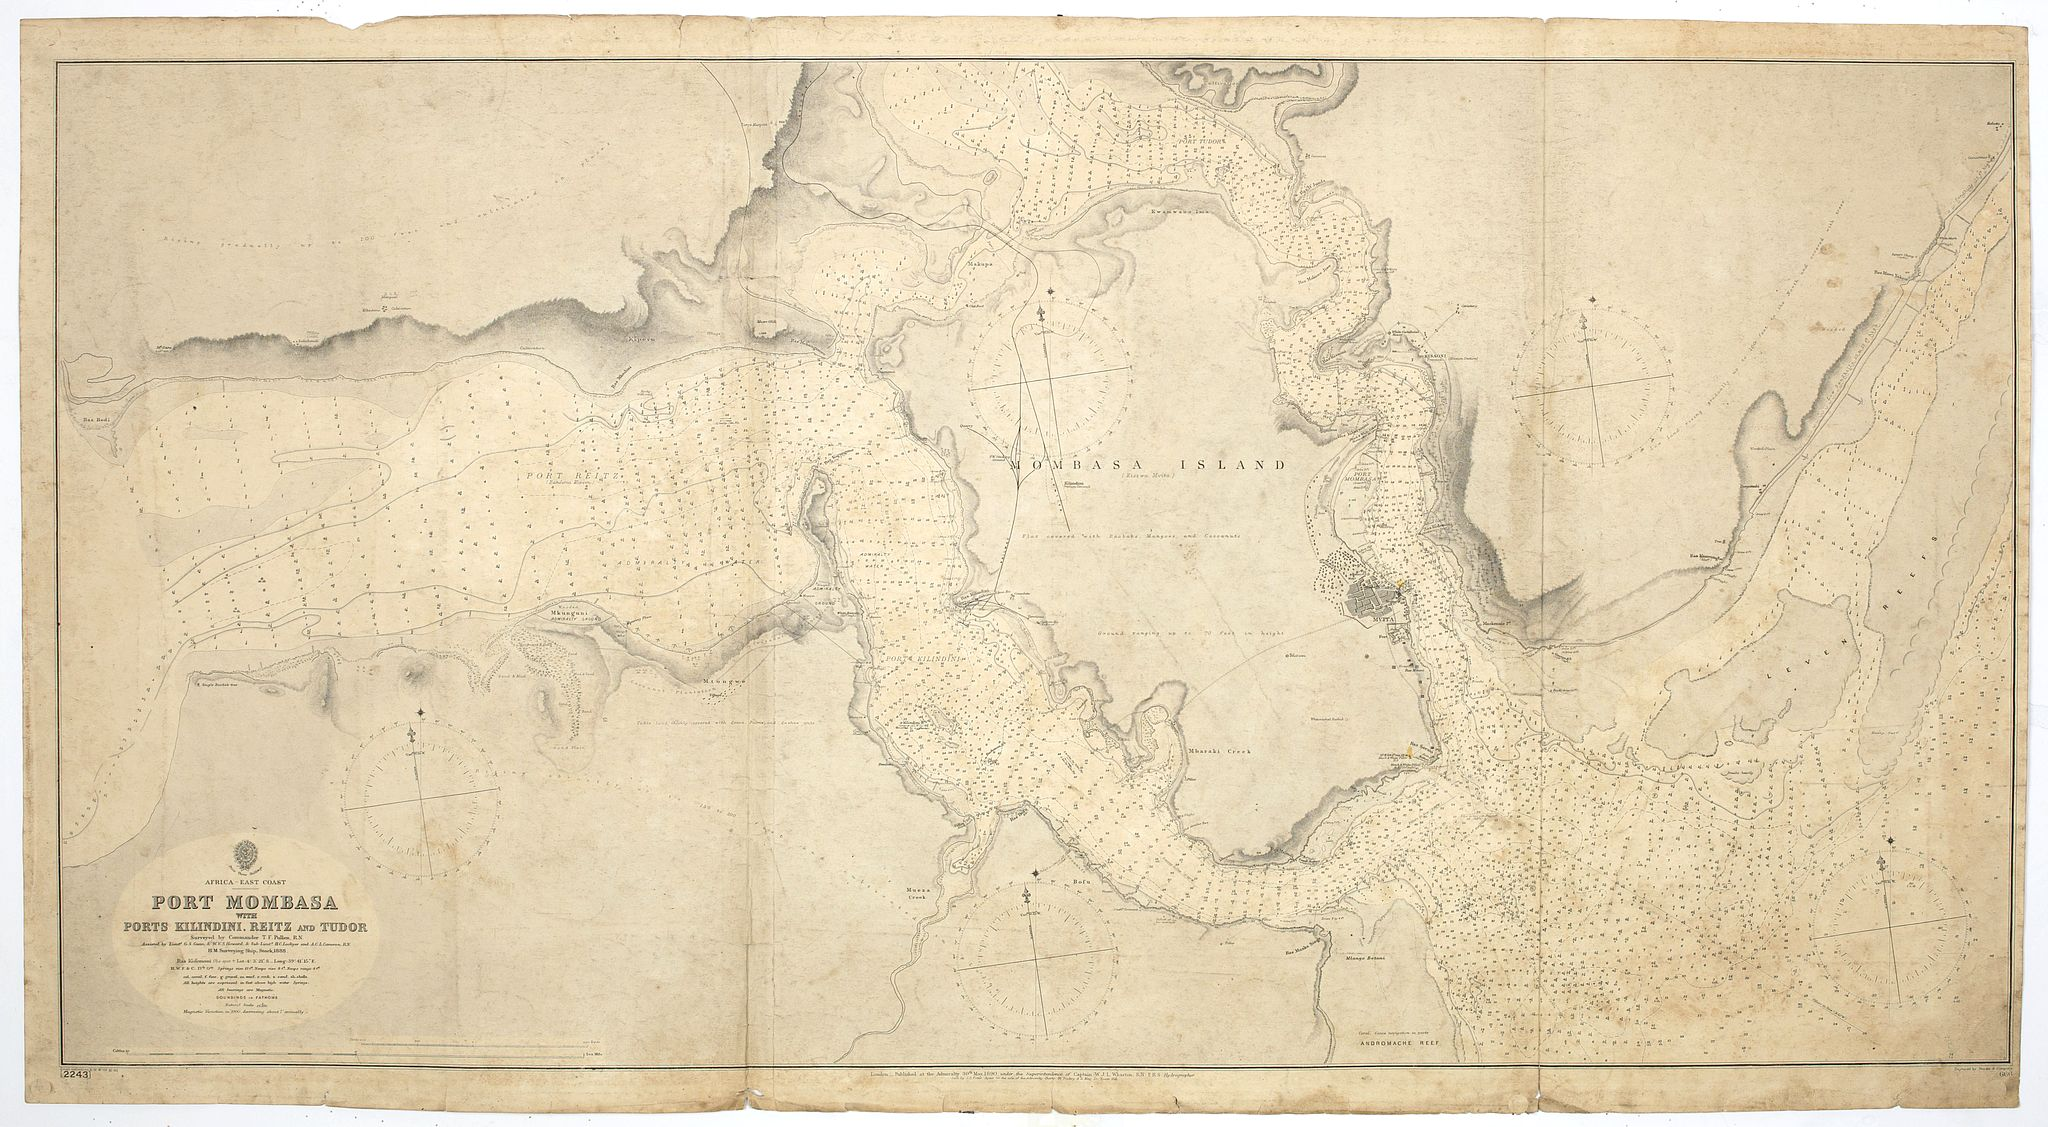 BRITISH ADMIRALTY CHART. -  Africa east coast, Port Mombasa with Ports Kilindini, Reitz and Tudor… H. M. Surveying ship Stork, 1888. Africa - SW coast Table Bay surveyed by Mr F Skead Master RN assisted by Mr Charles Watermeyer 1858-60